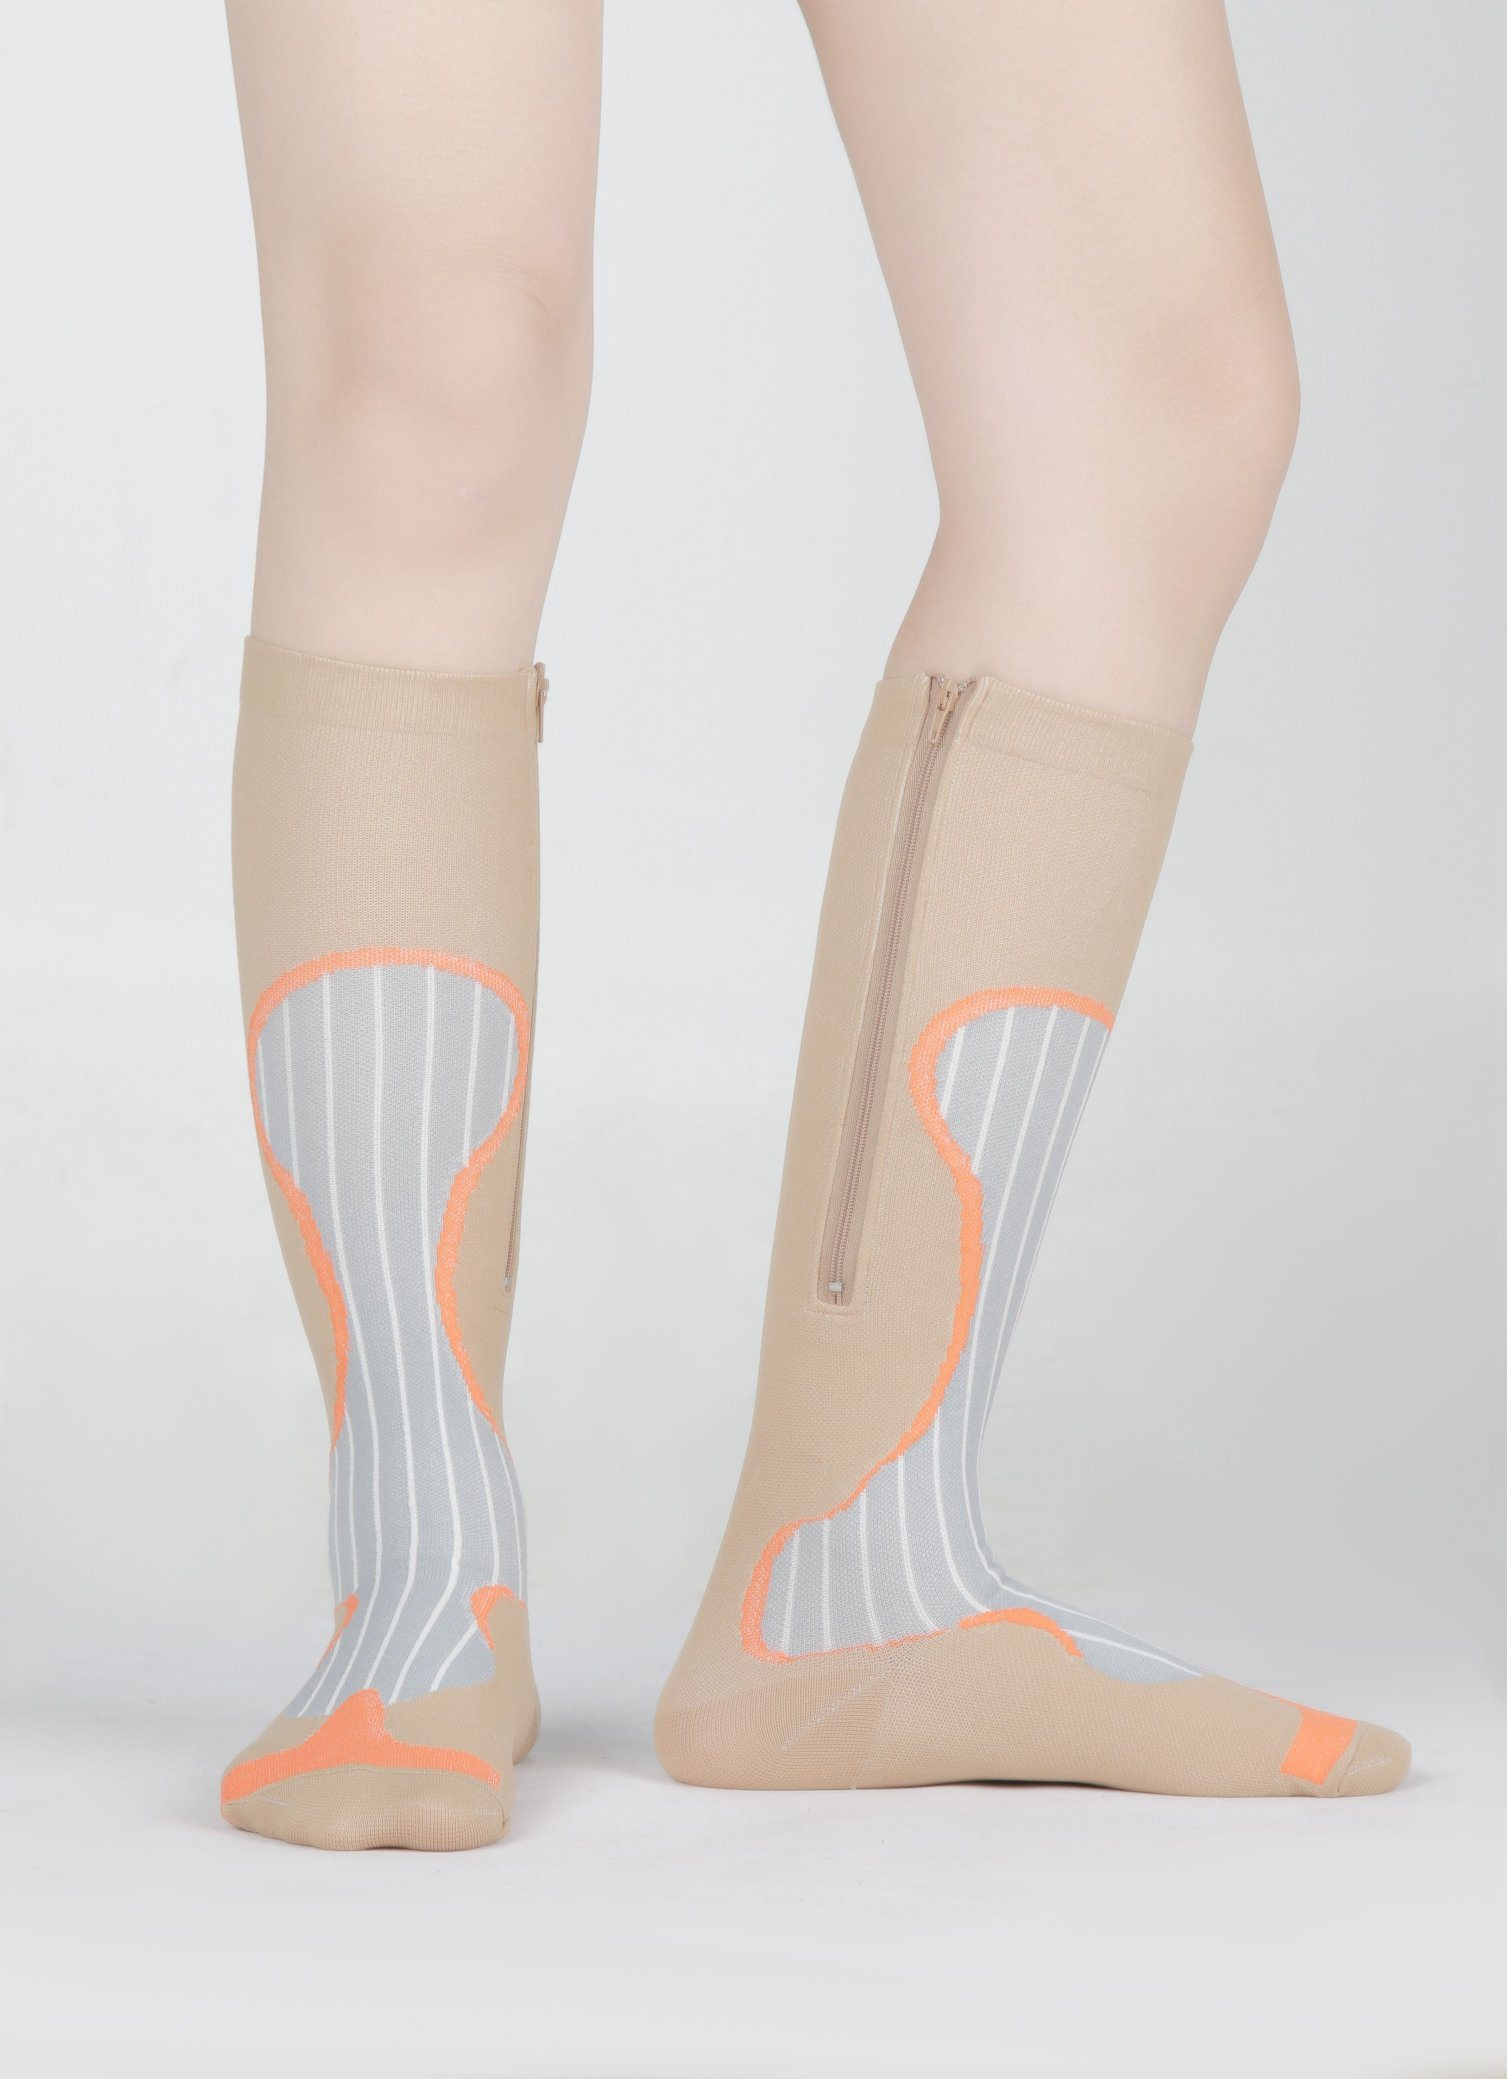 152c9a634a China Manufacturer Knee High Athletic Sport Graduated Compression Socks for Varicose  Veins - China Compression Socks, Sport Socks